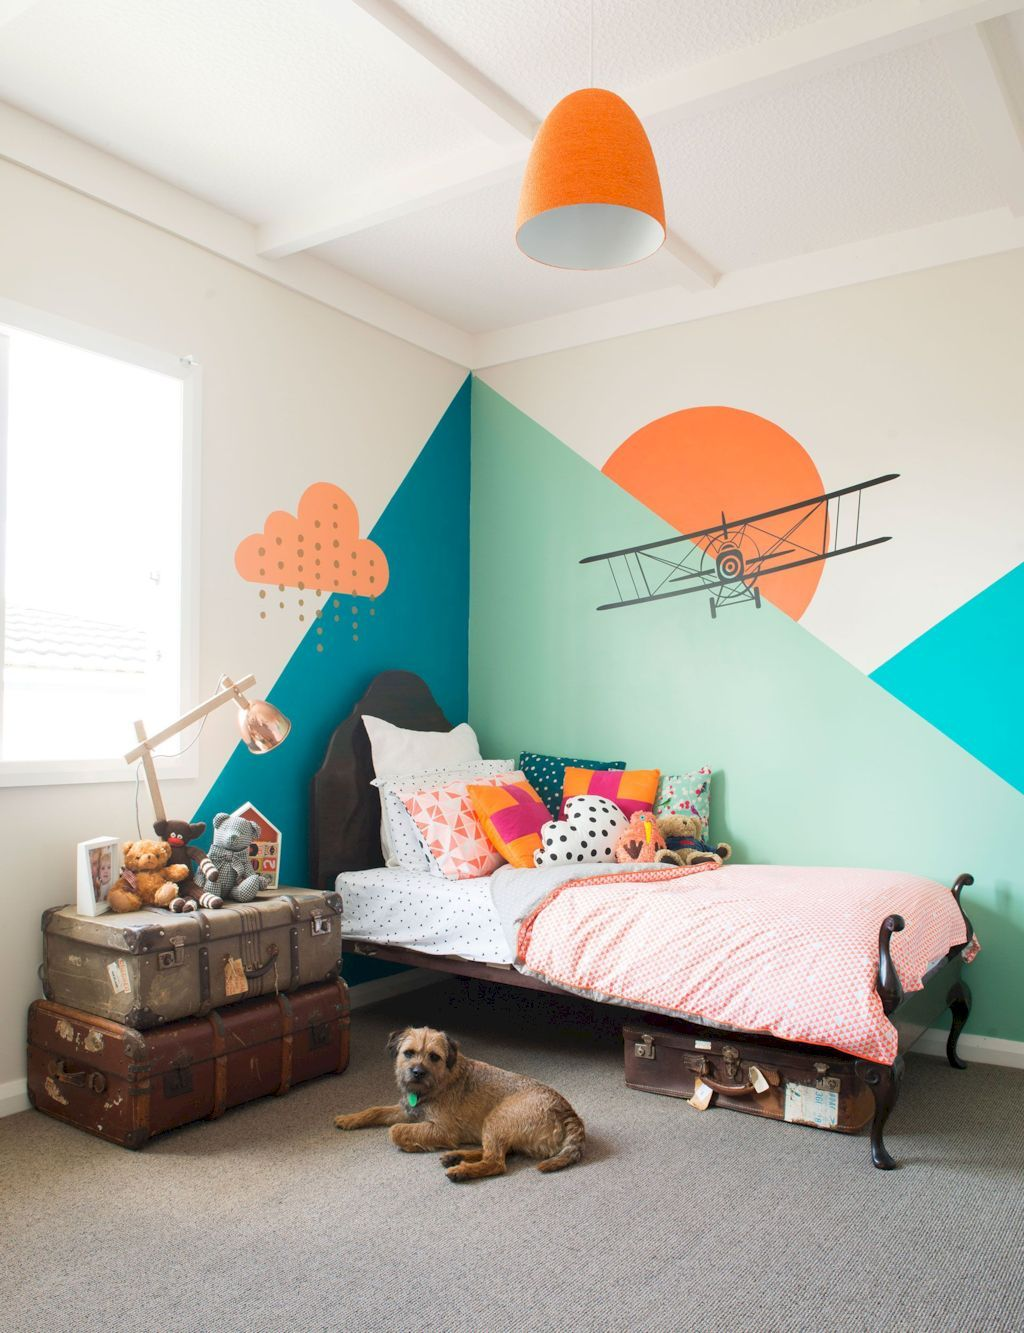 Baby Boy Room Paint Ideas: Aesthetic Kid Rooms With Geometric Wall Themes